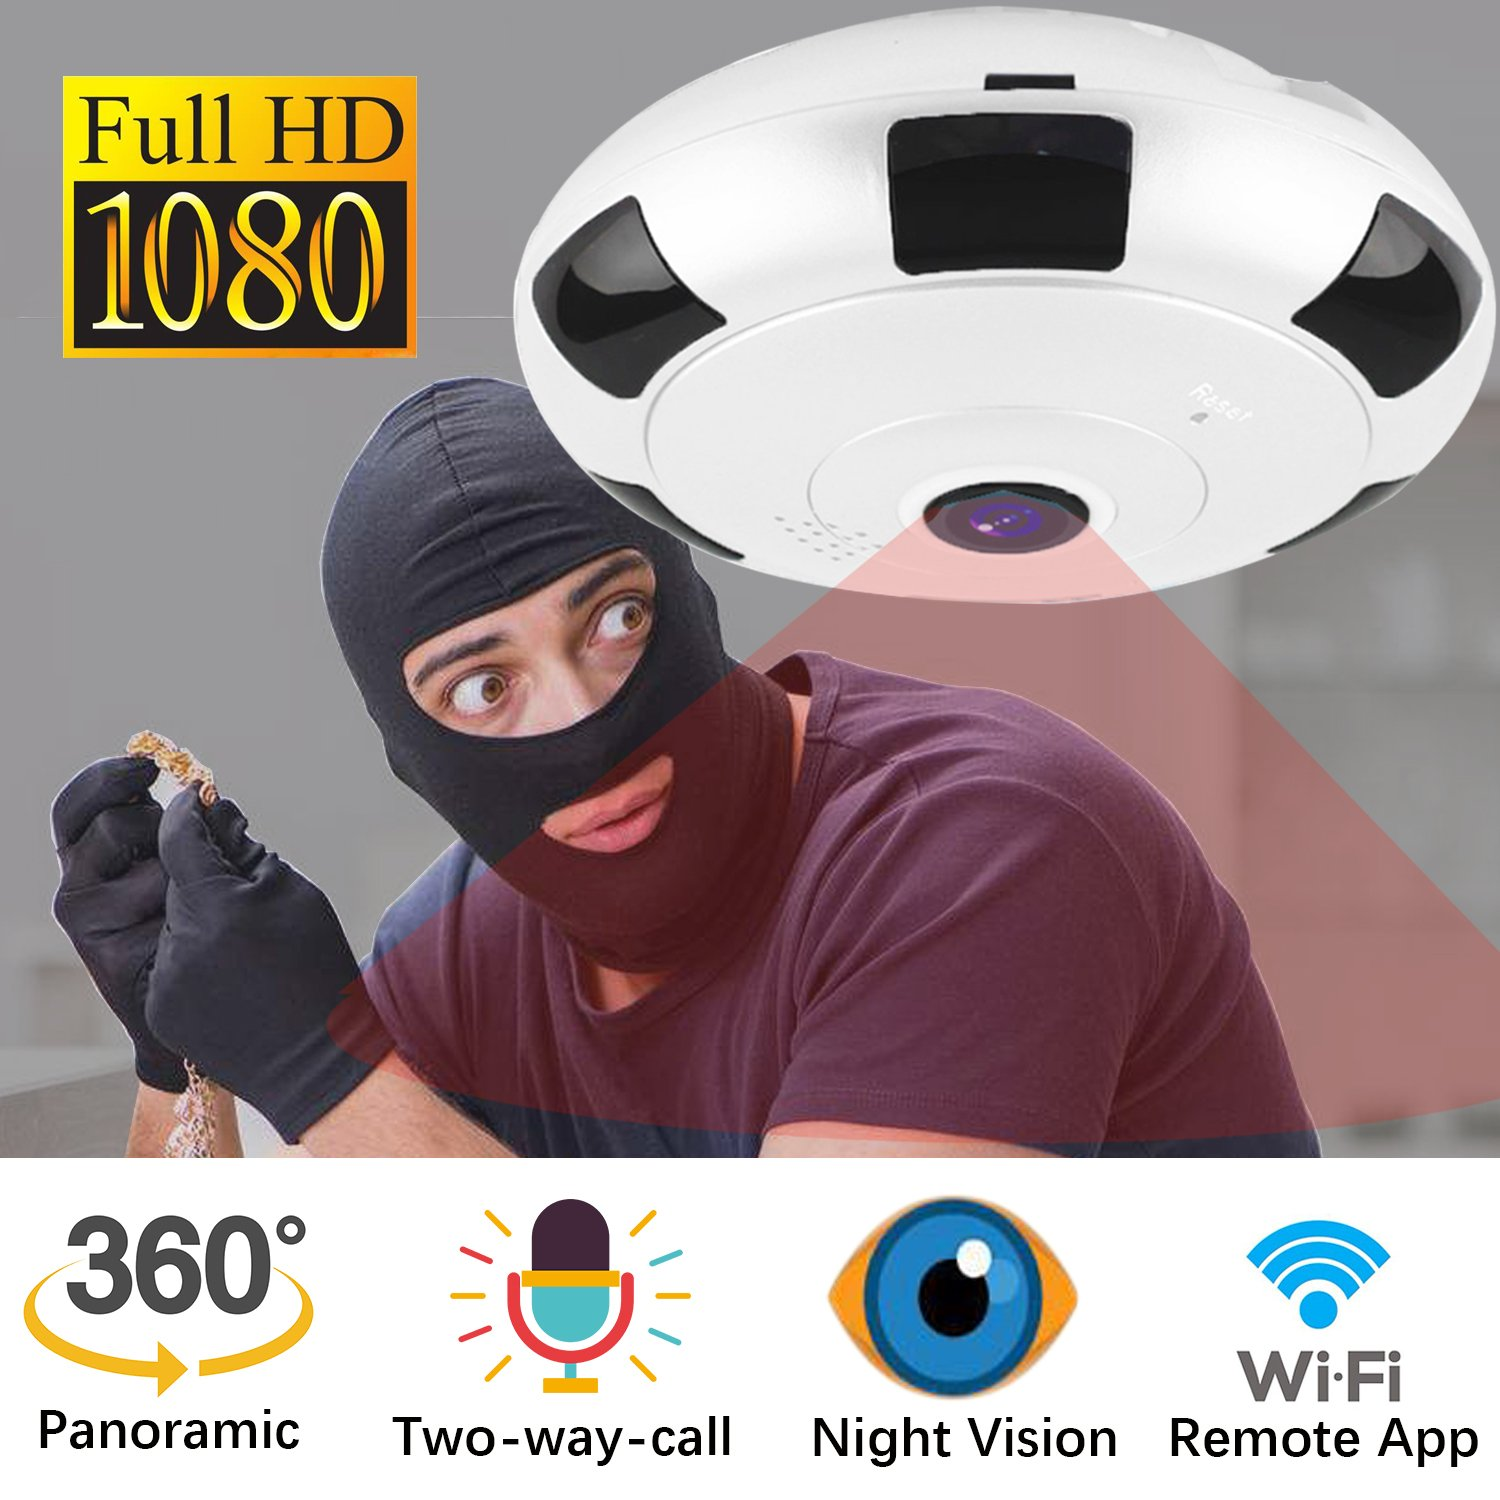 IP Camera 360 WIFI 1080P Outdoor Indoor Dome Camera Panoramic with Audio Motion Detection Alarm Monitor at Night for Home Office School Security Support TF Card Android IOS,Home Electronic by iCooLive